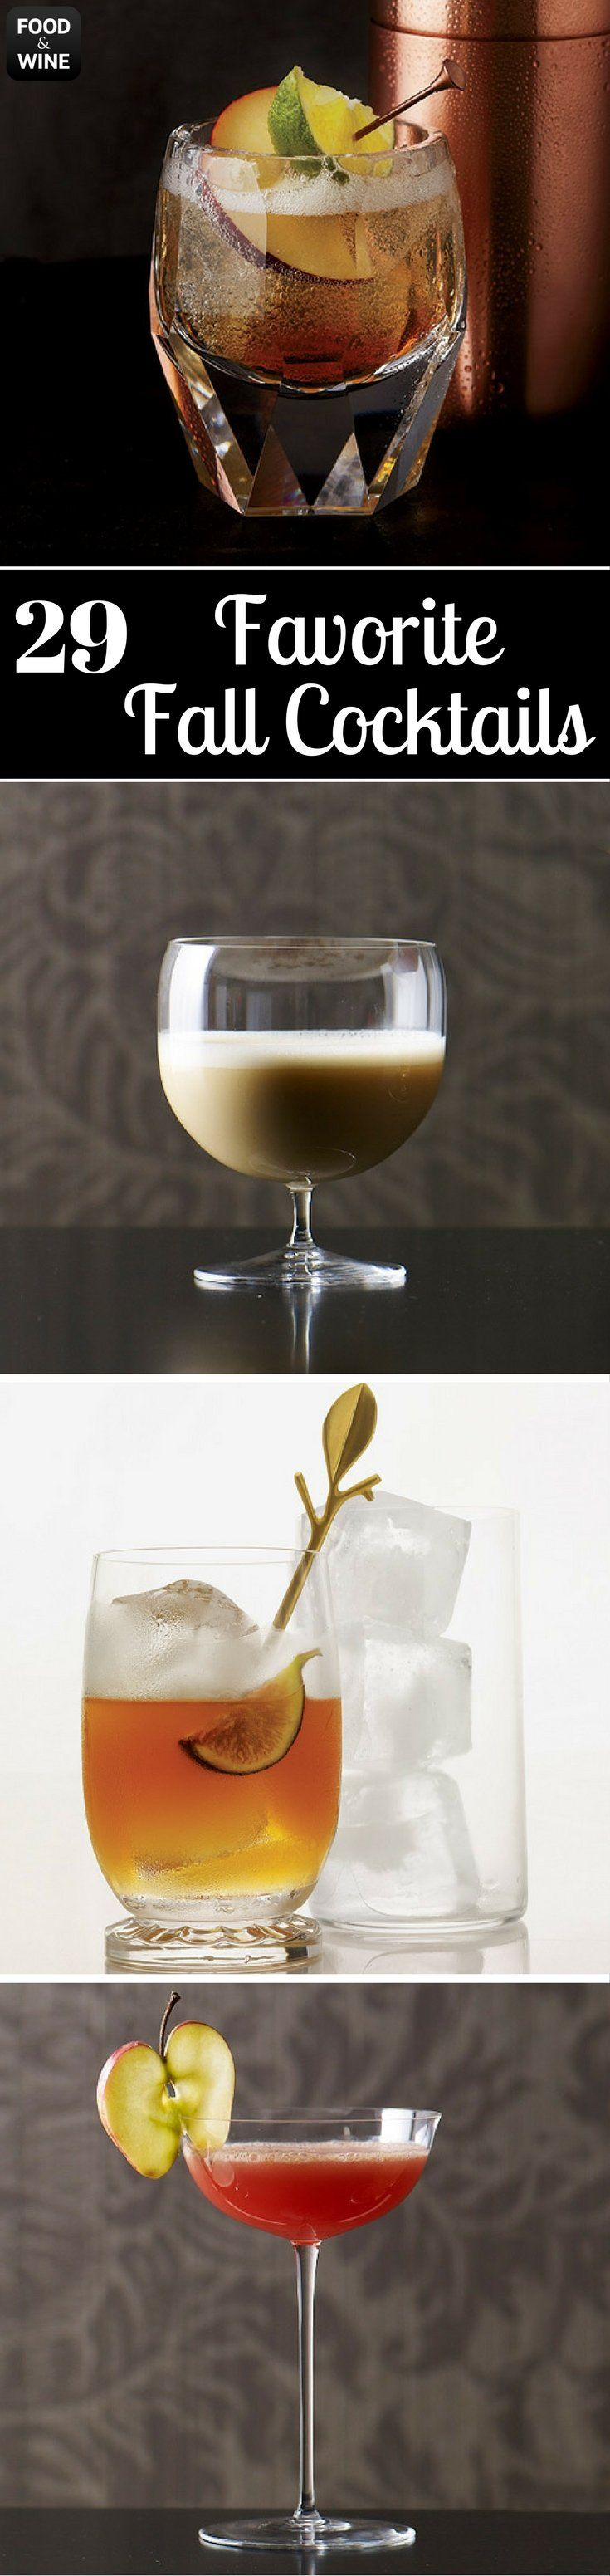 Seasonal ingredients like cranberries and apples pair beautifully with ginger beer, white wine and hard cider to create delicious drinks. Whether you're looking for a comforting hot toddy or a tart pear sour, we've got your fall cocktail needs covered. | Food & Wine